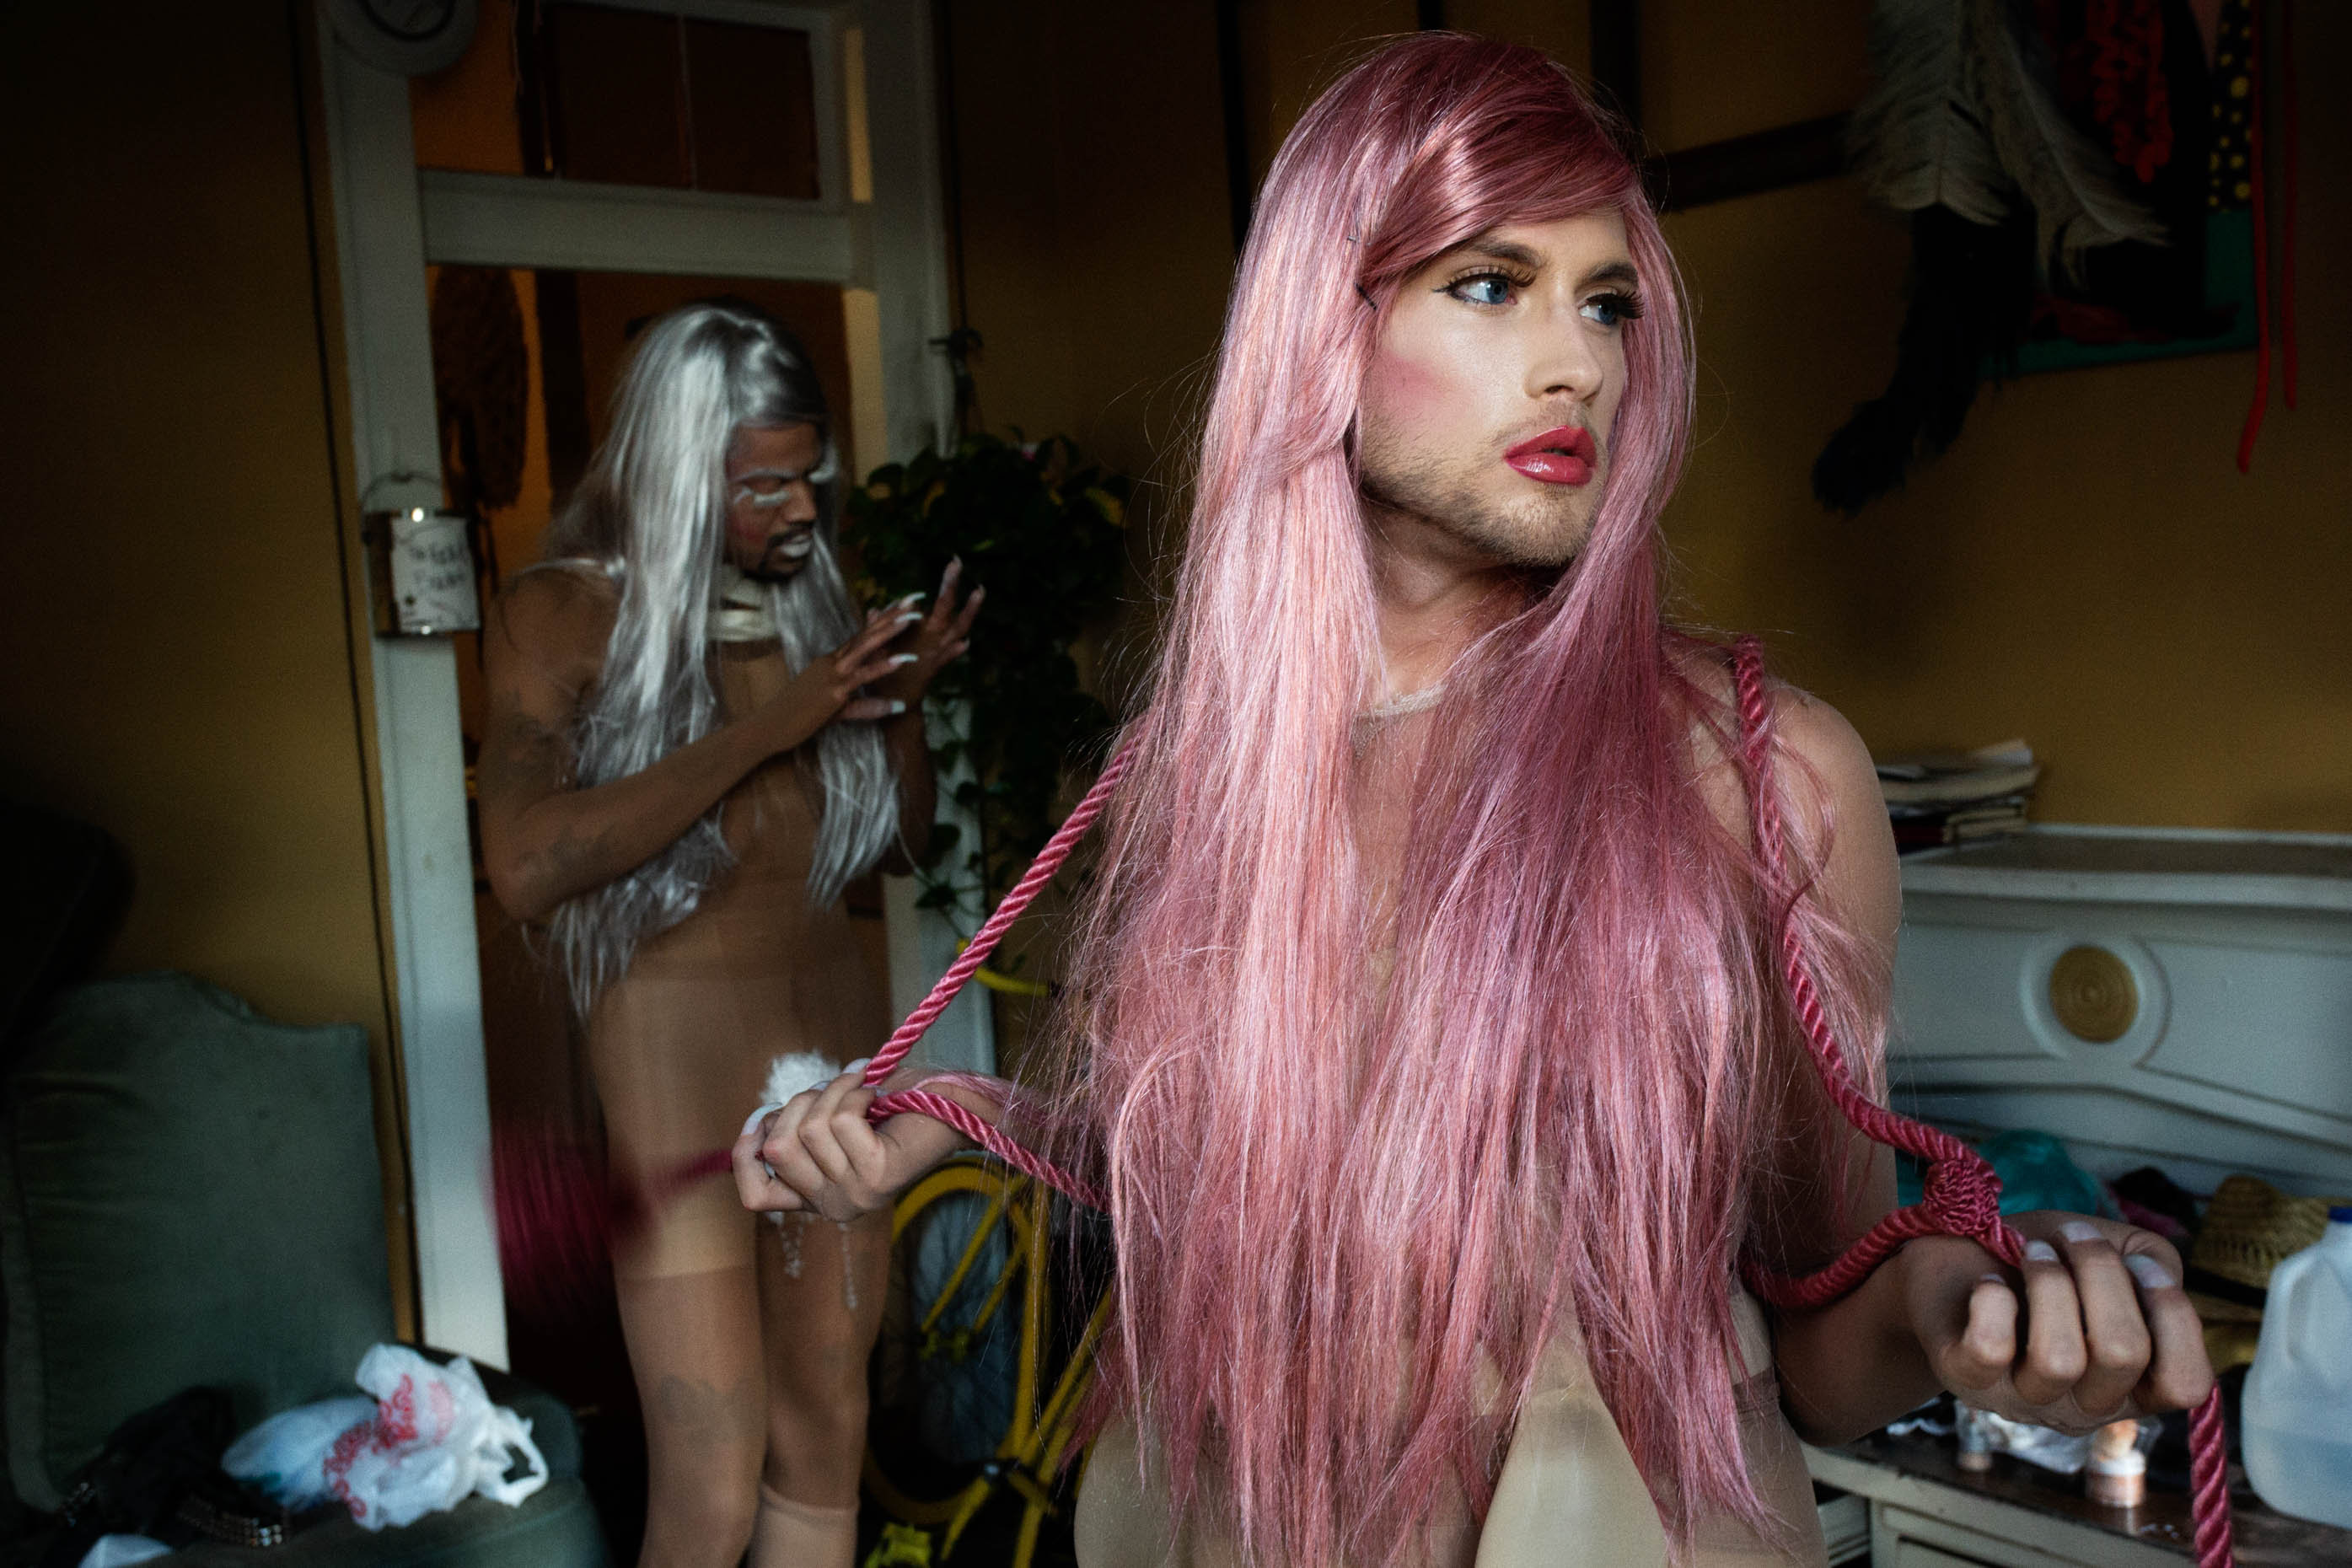 man in drag, new orleans, louisiana